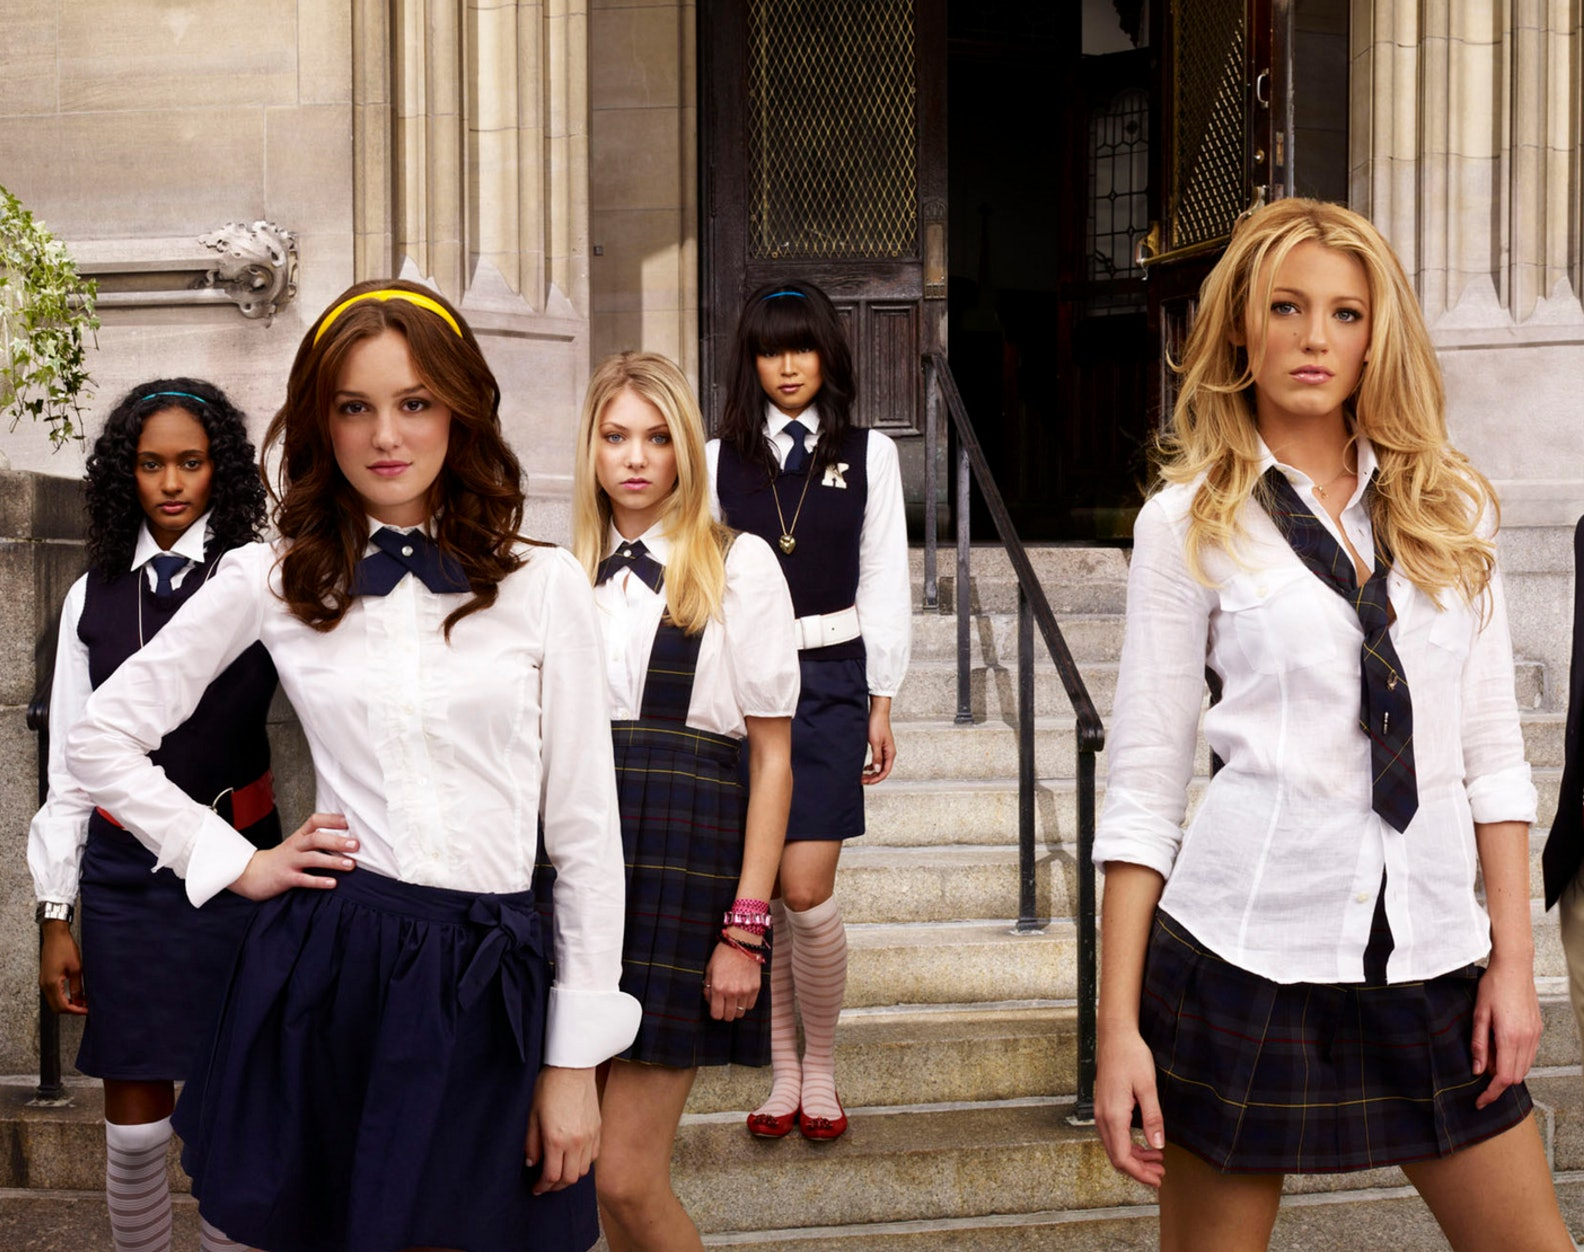 11 Things Gossip Girl Probably Influenced You To Buy